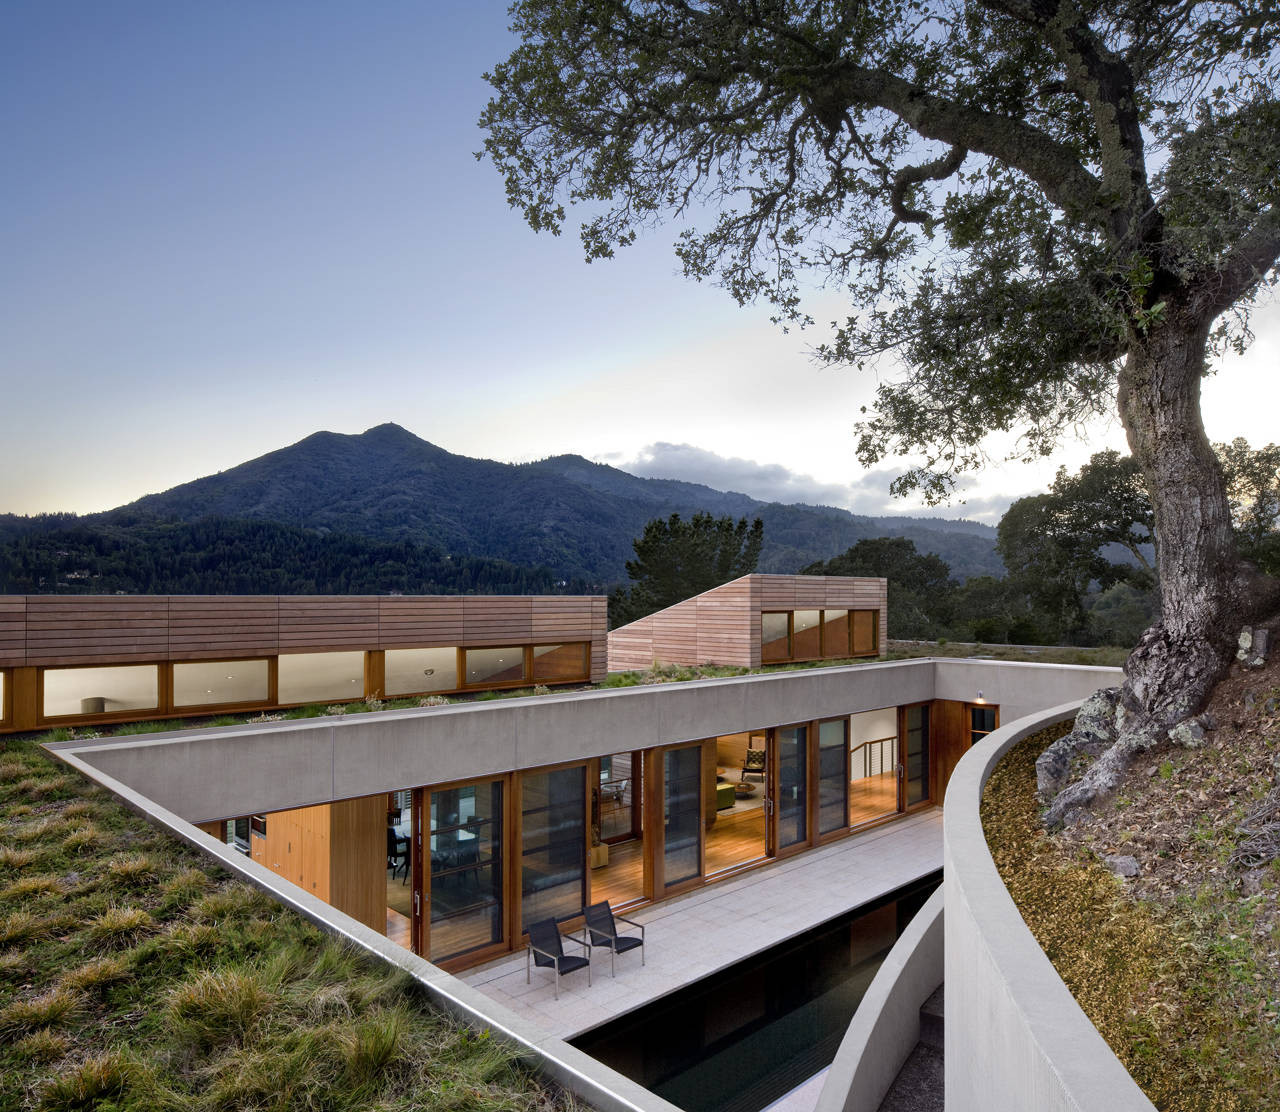 Kentfield Hillside Residence / Turnbull Griffin Haesloop Architects, © David Wakely Photography